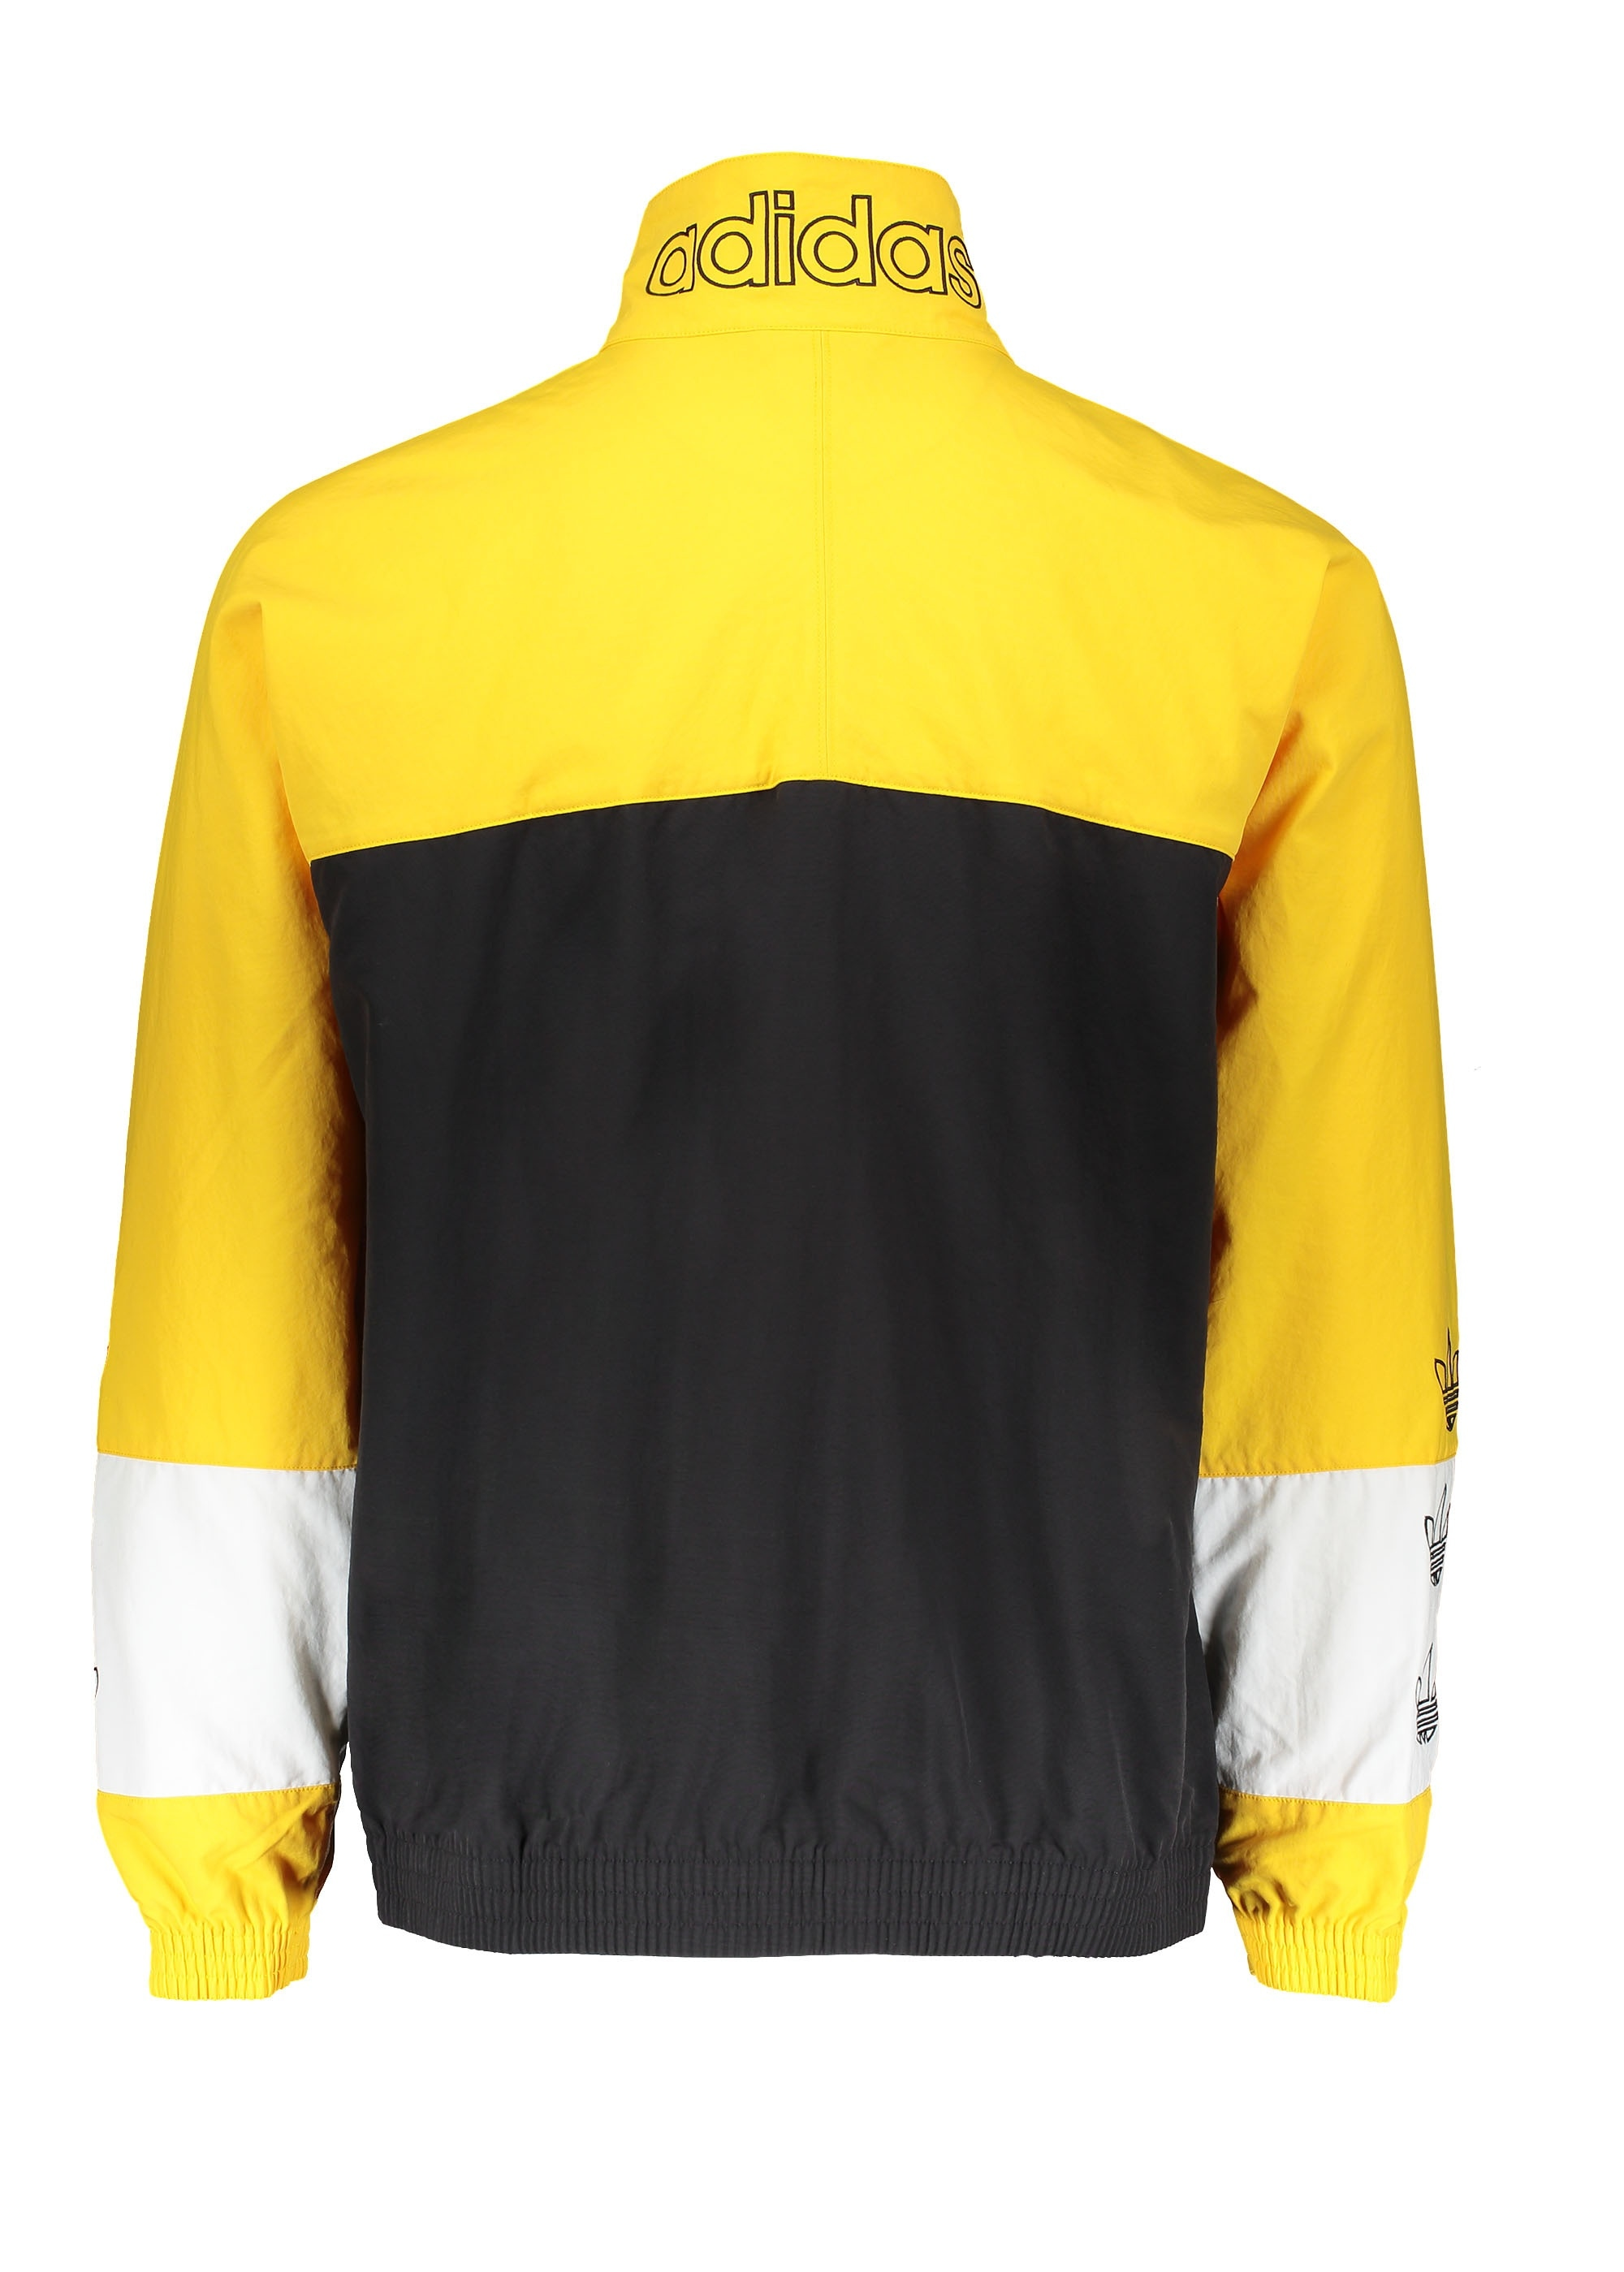 adidas Originals Apparel Tourney Warm Up Jacket Black Yellow